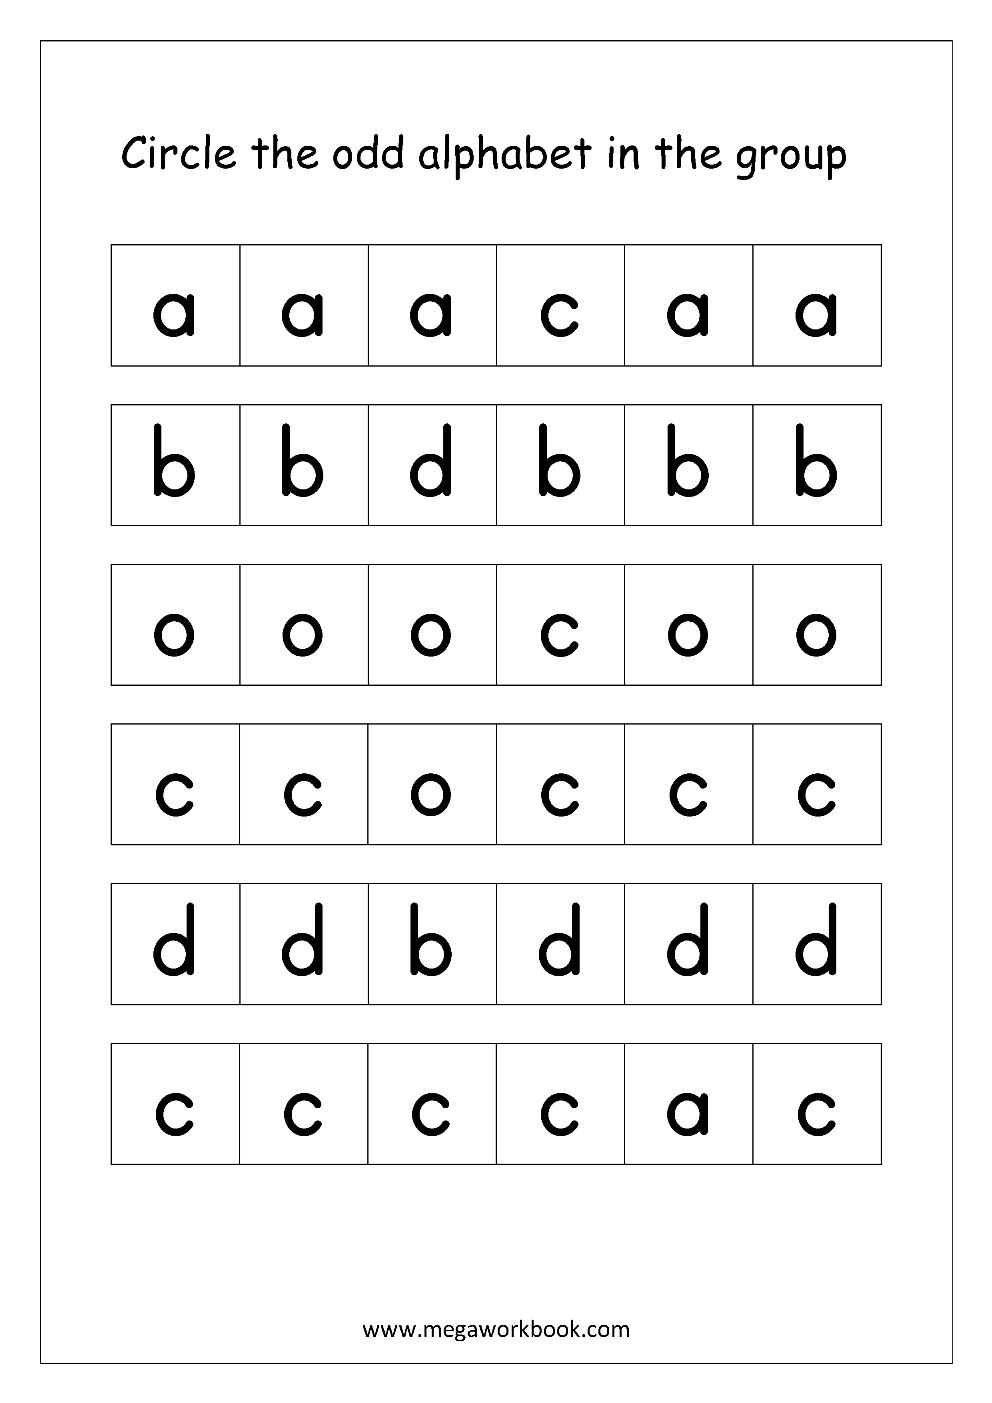 English Worksheet - Confusing Alphabets (Circle The Odd One